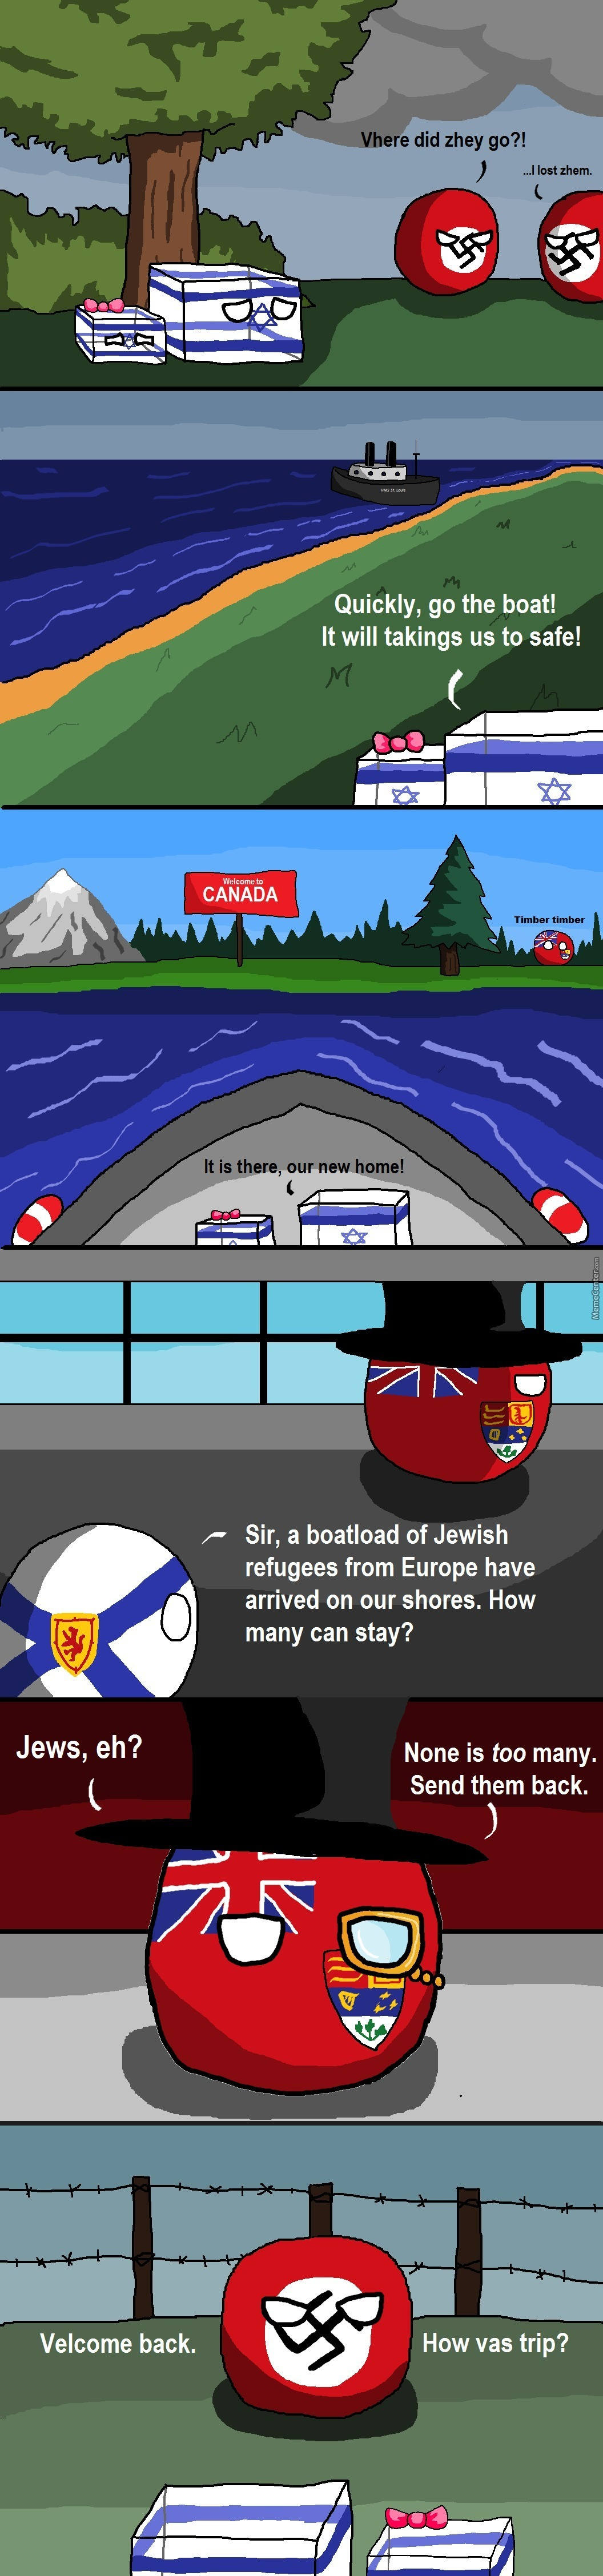 Canada In Wwii